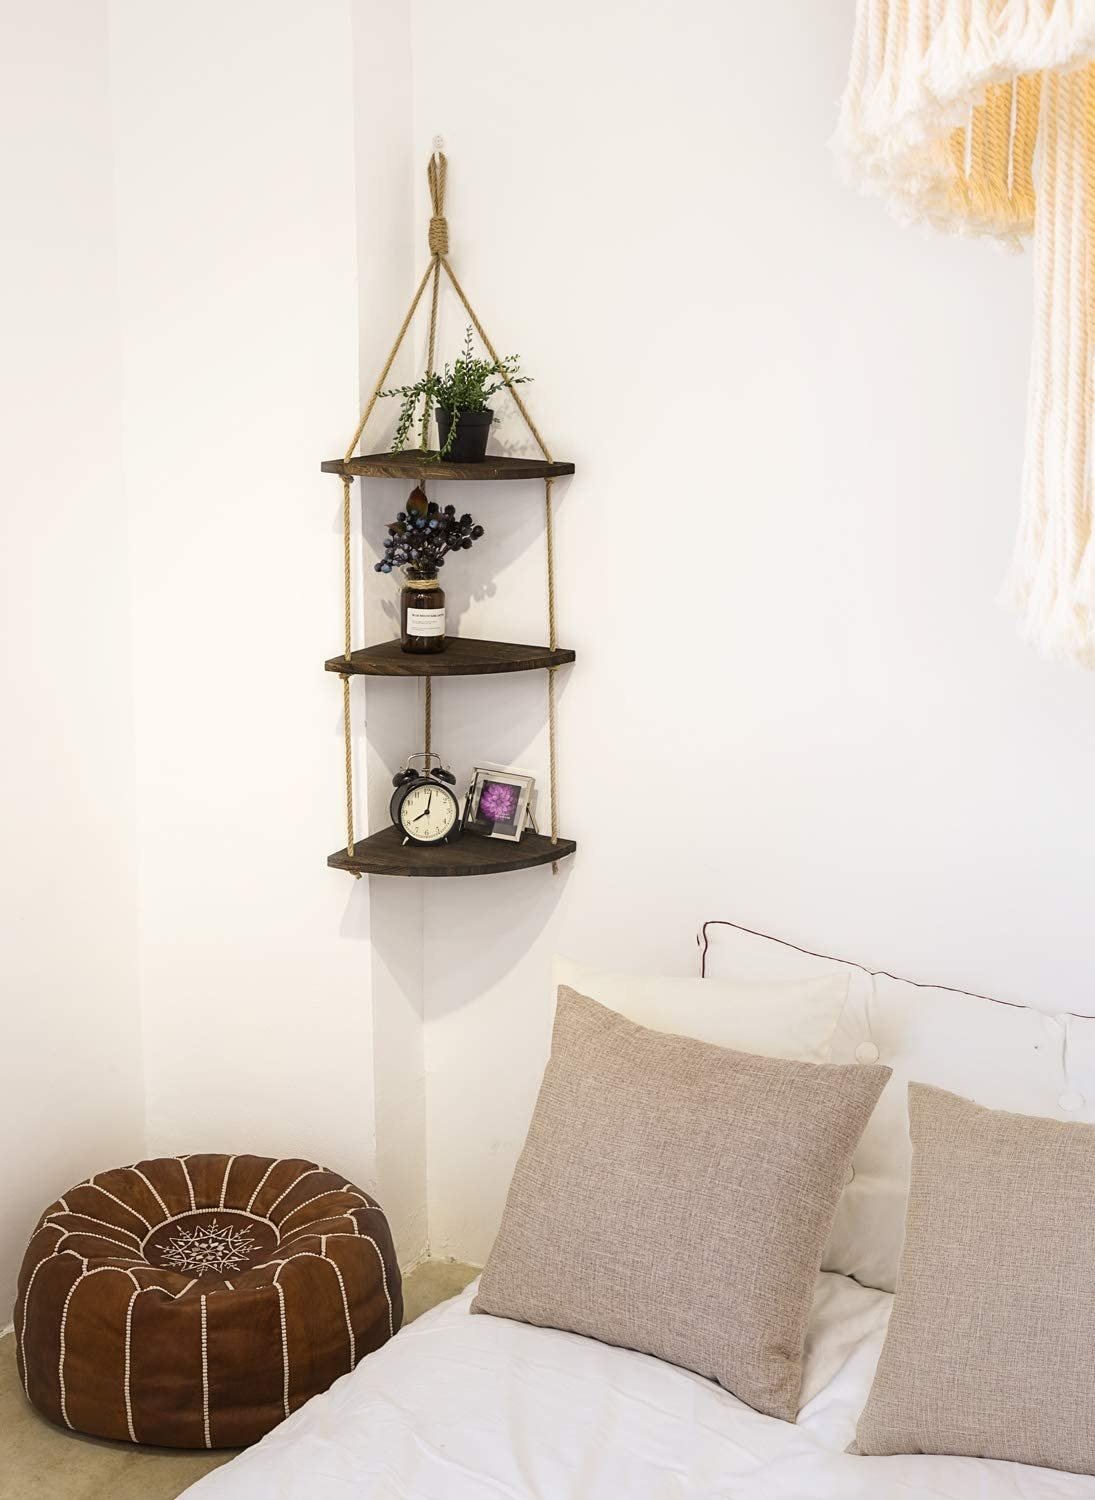 Three tiny triangular shelves hung up with rope in a boho style